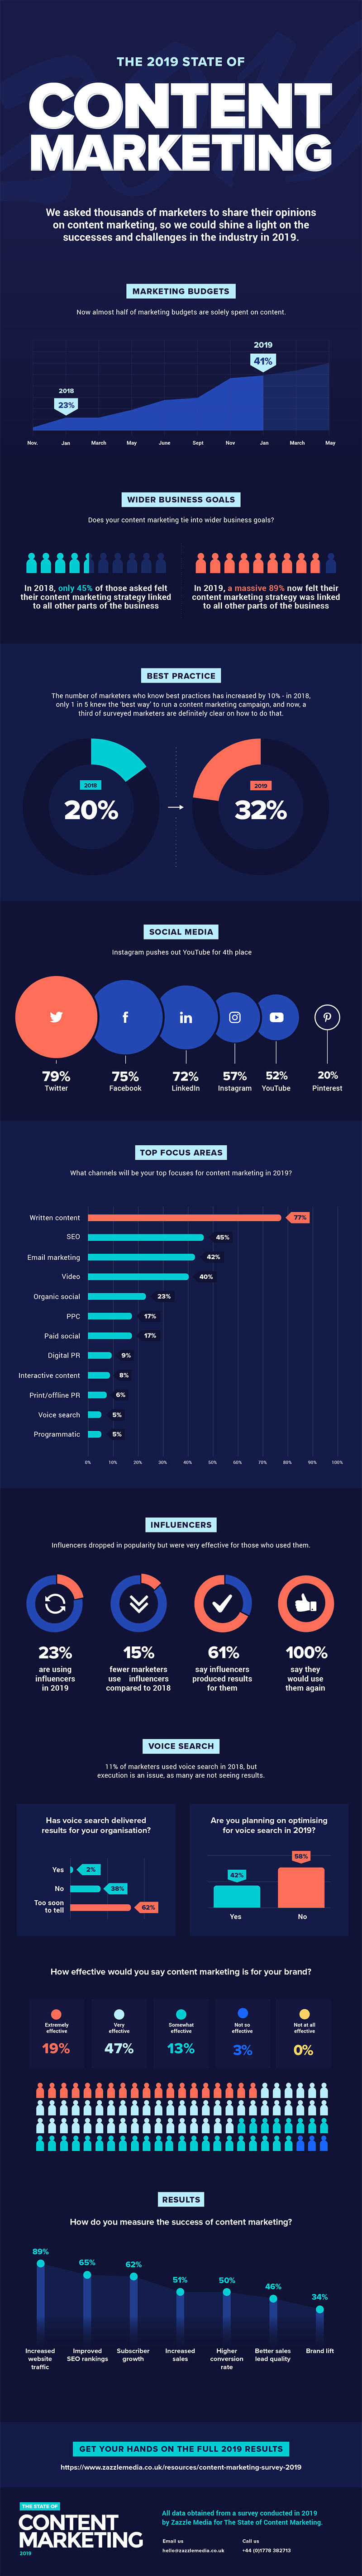 State of Content Marketing 2019